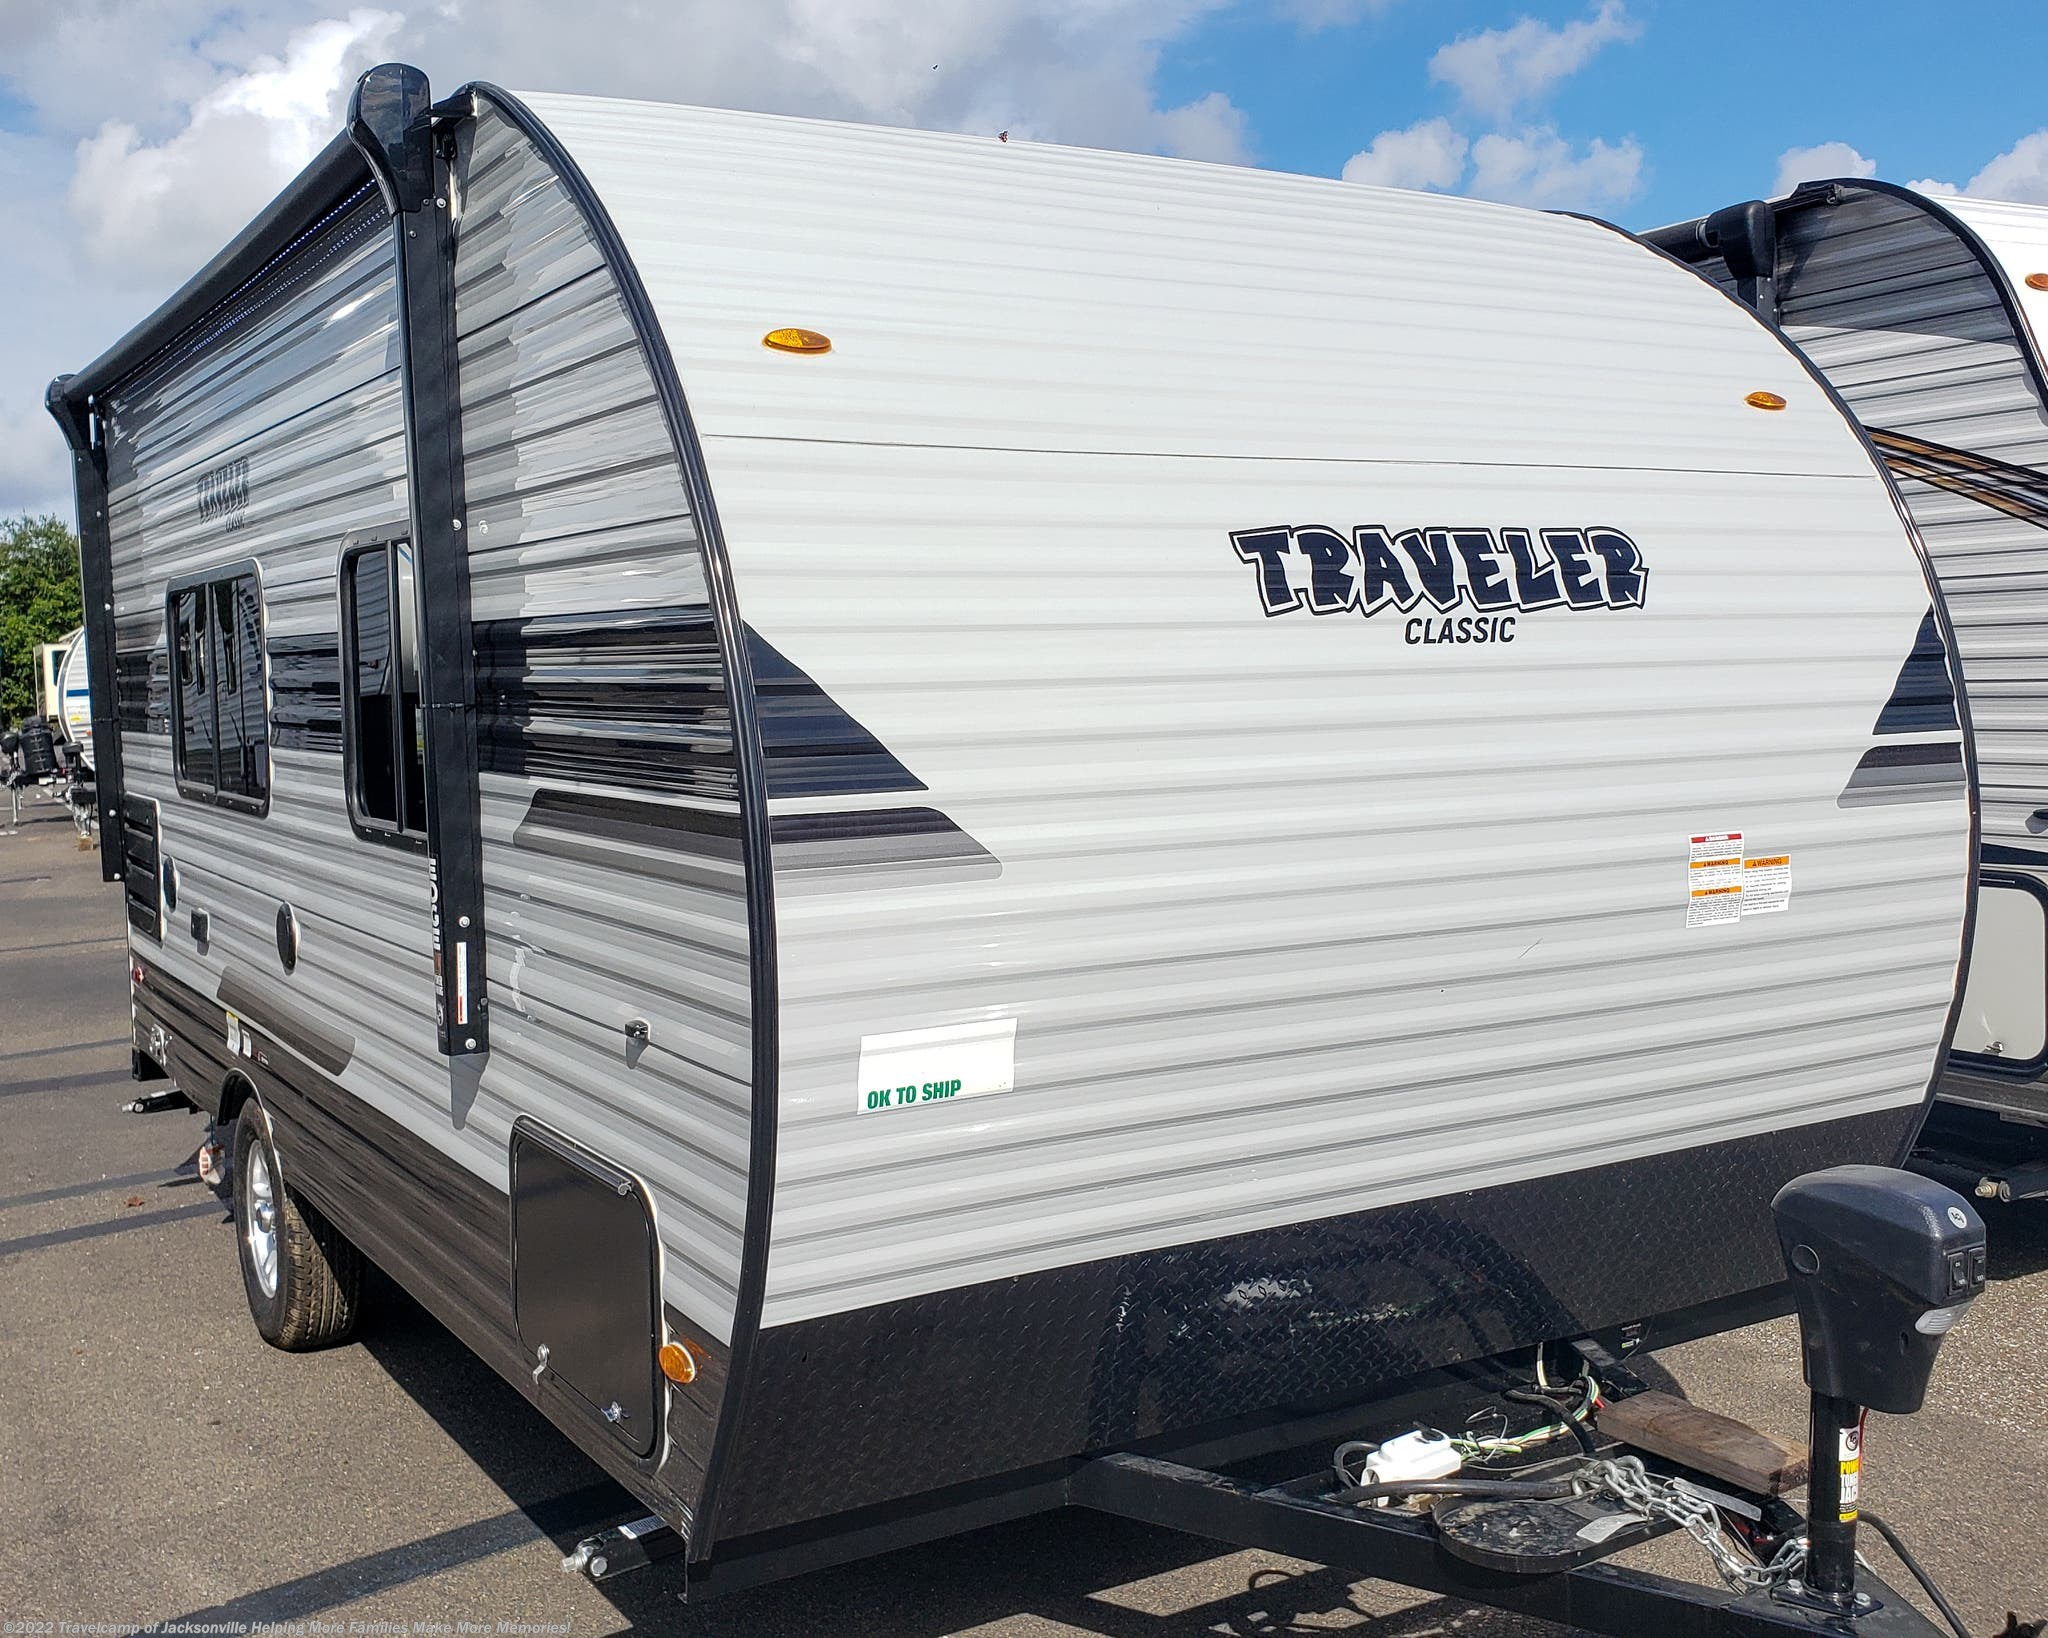 2021 Sunset Park RV TRAVELER 18RD CLASSIC